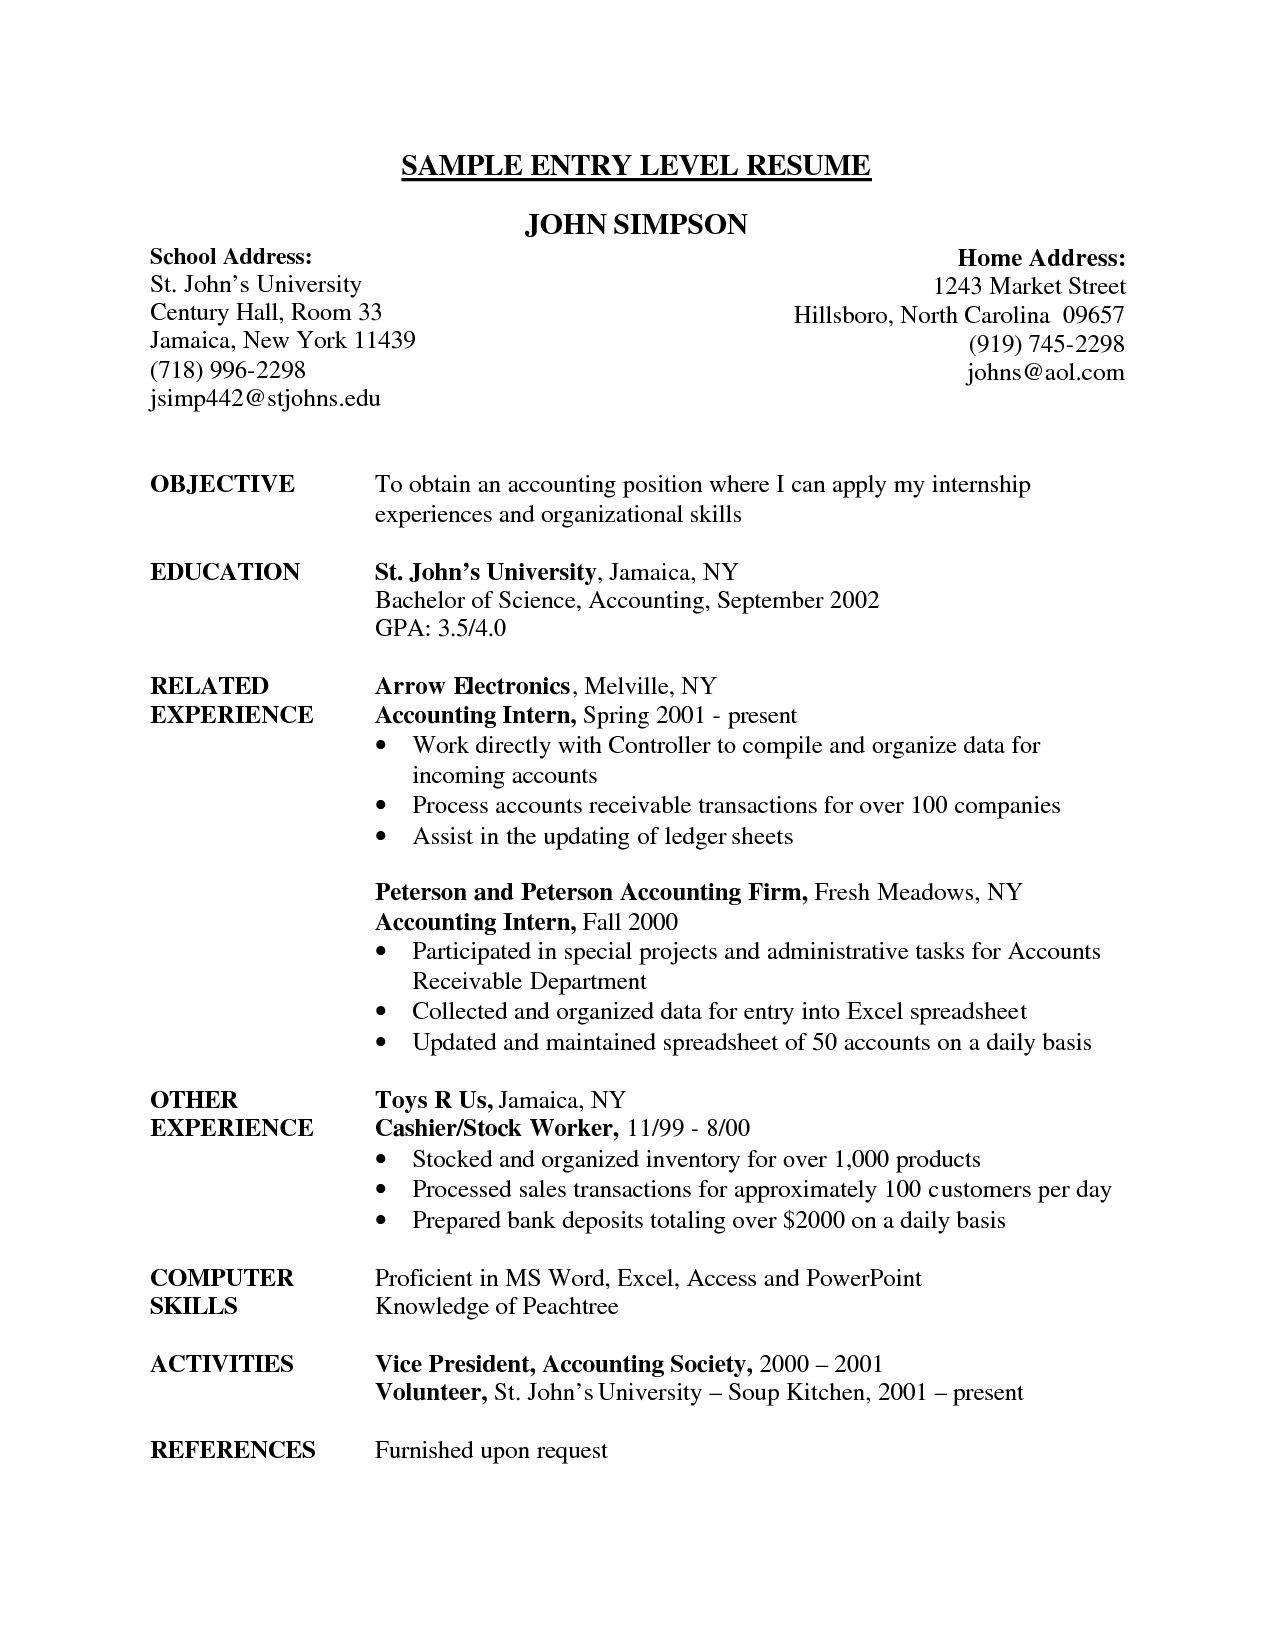 Entry Level Resume Template Entry Level Resume Example Entry Level Job Resume Examples